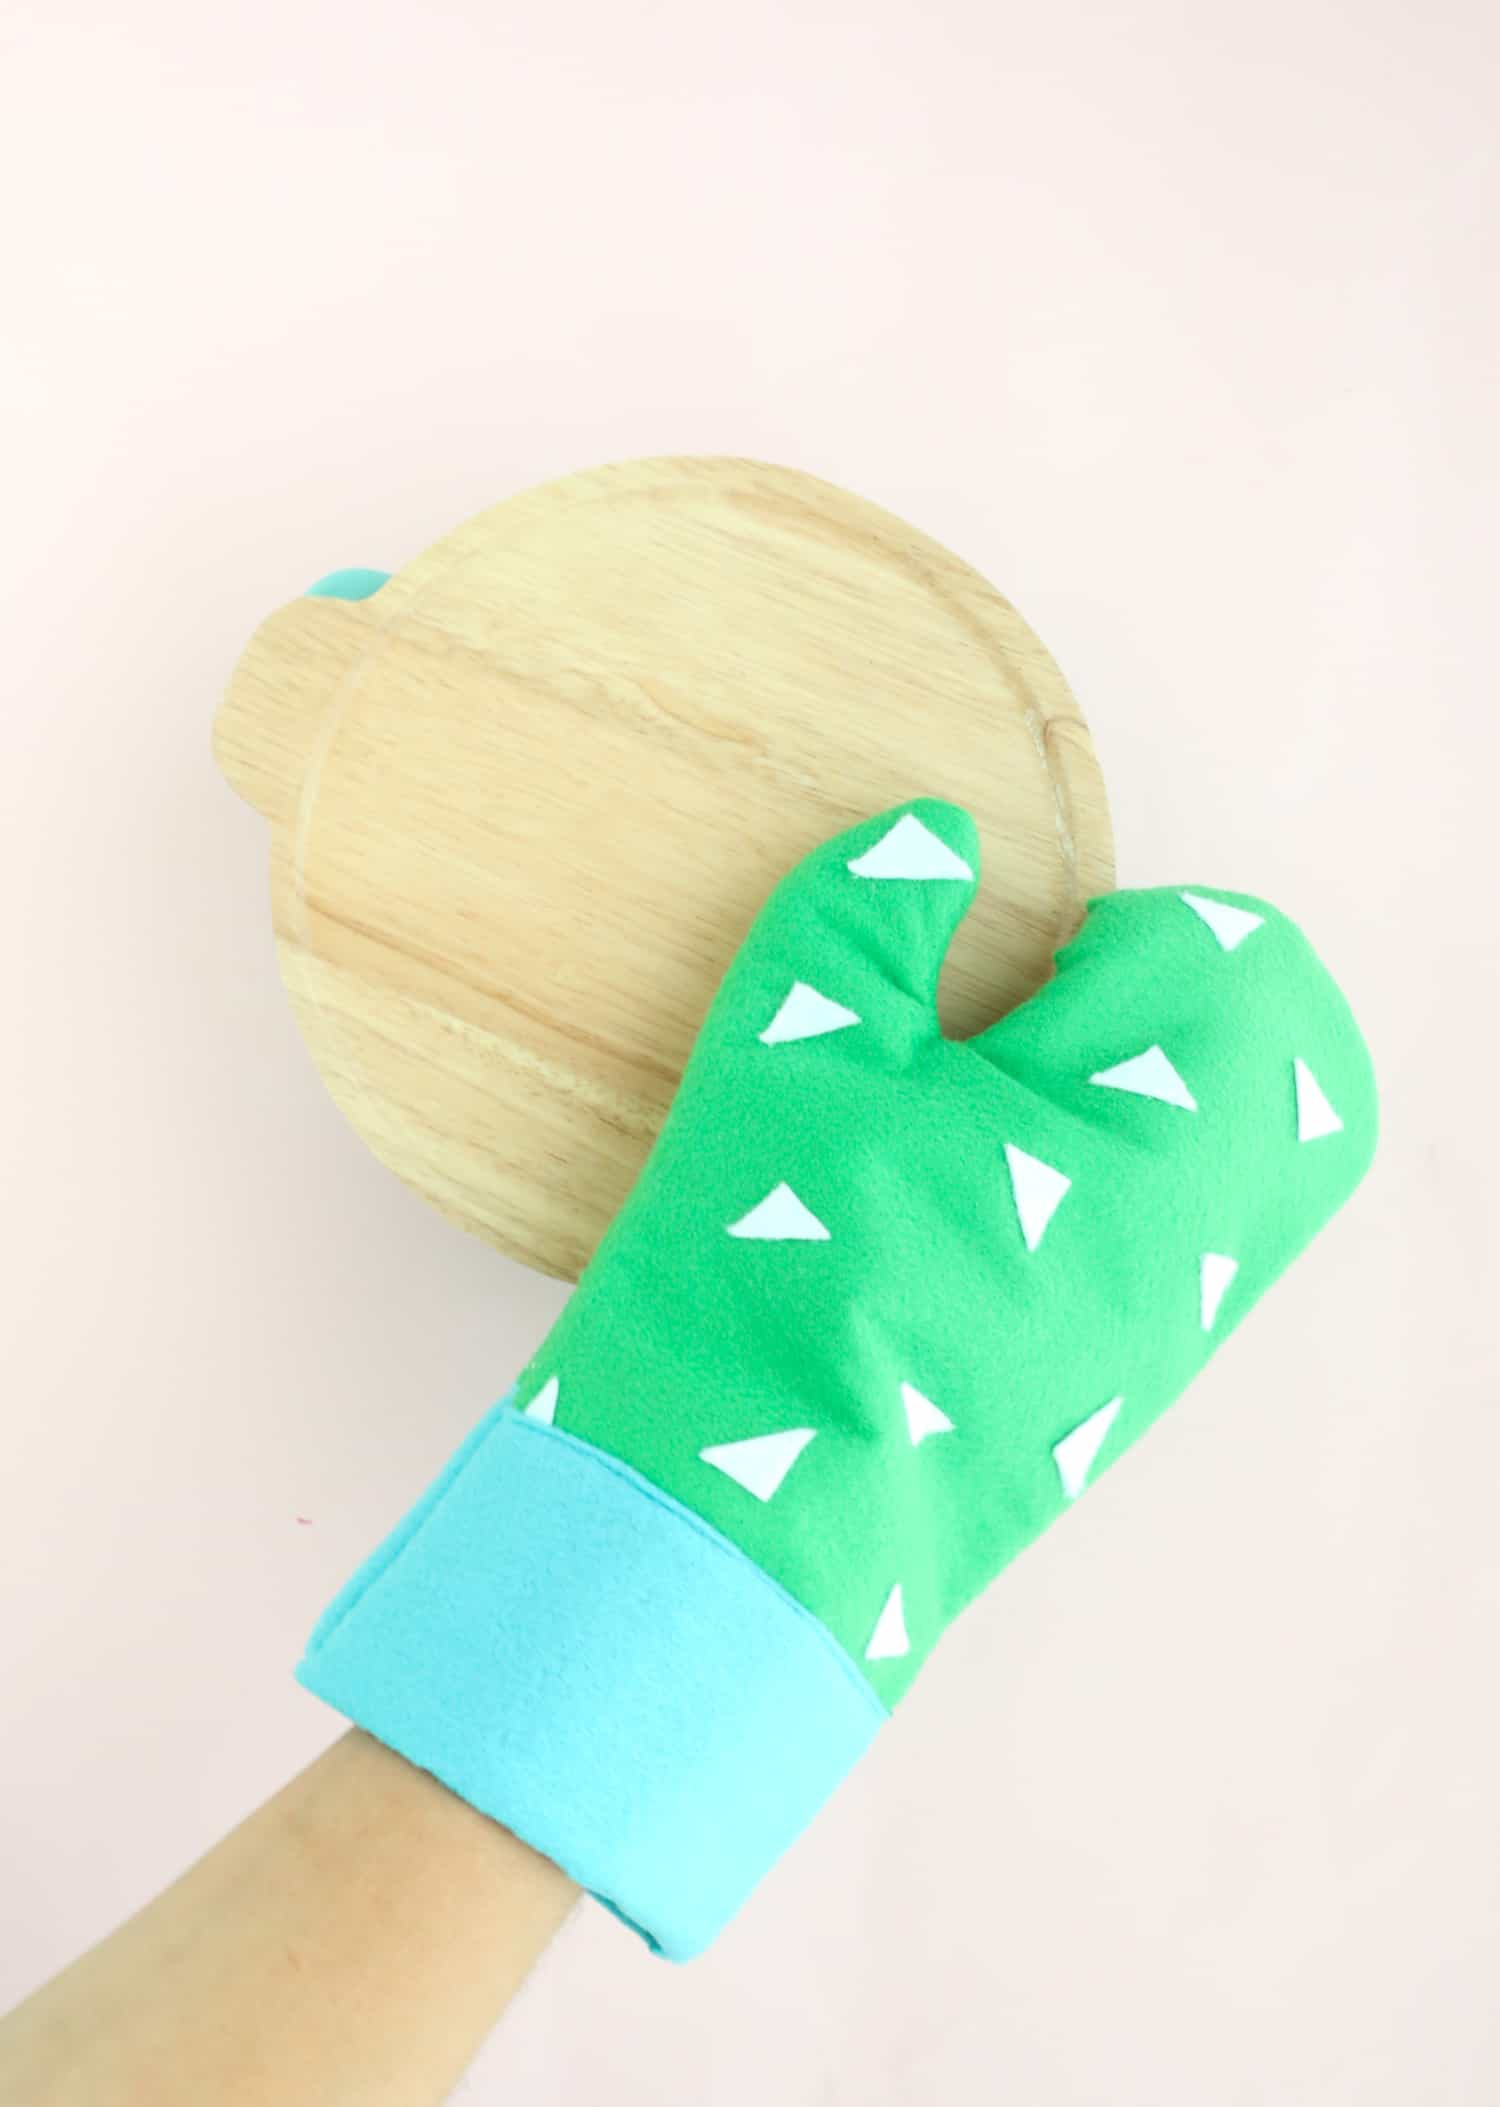 Diy cactus oven mitts